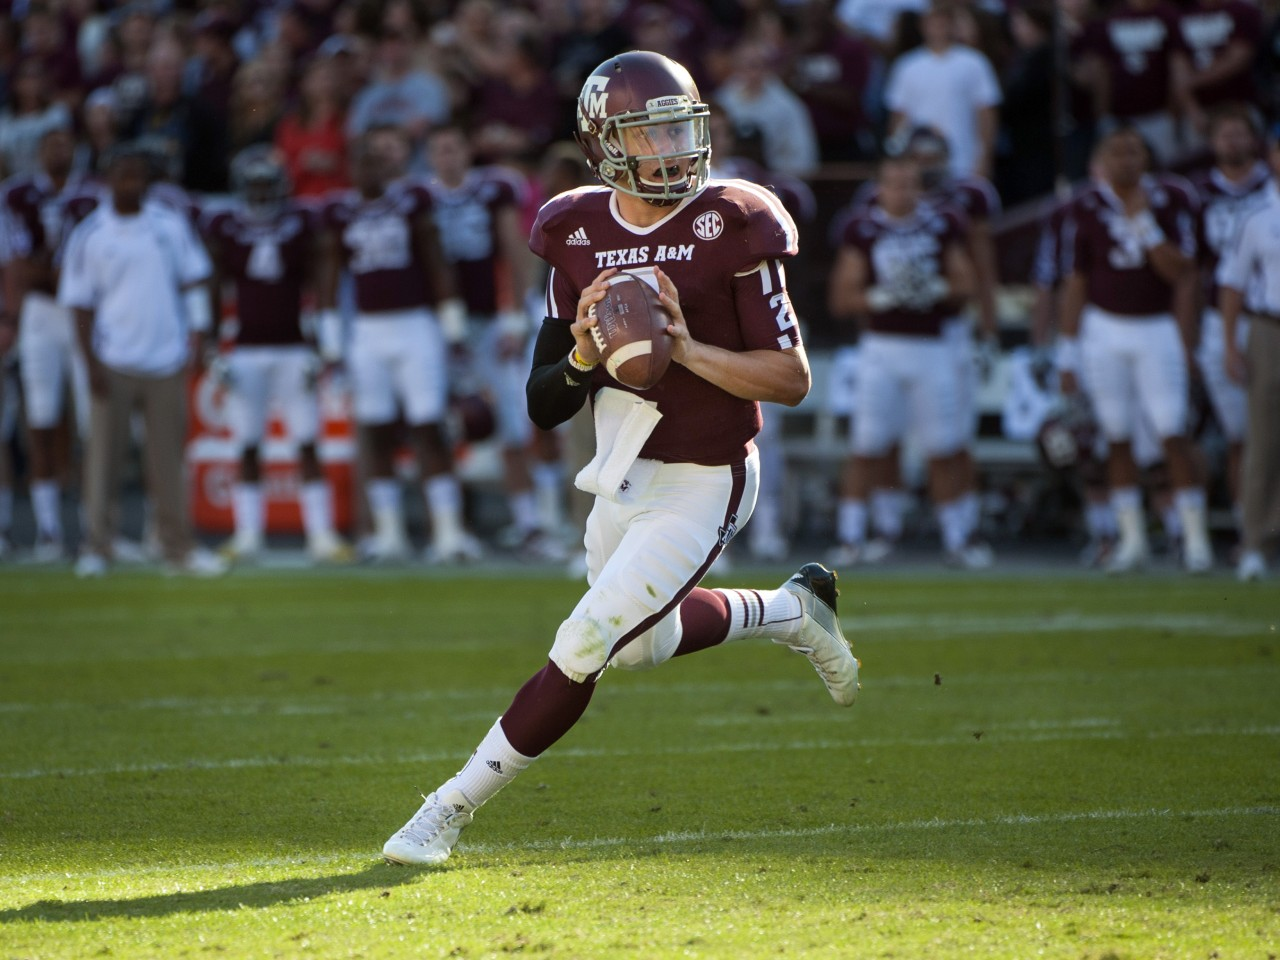 2012 Heisman Trophy Winner - Johnny Manziel has consistently been in the headlines, leading right up to College Football '13.  On Saturday, his Aggies will host Rice. Source: www.bloguin.com